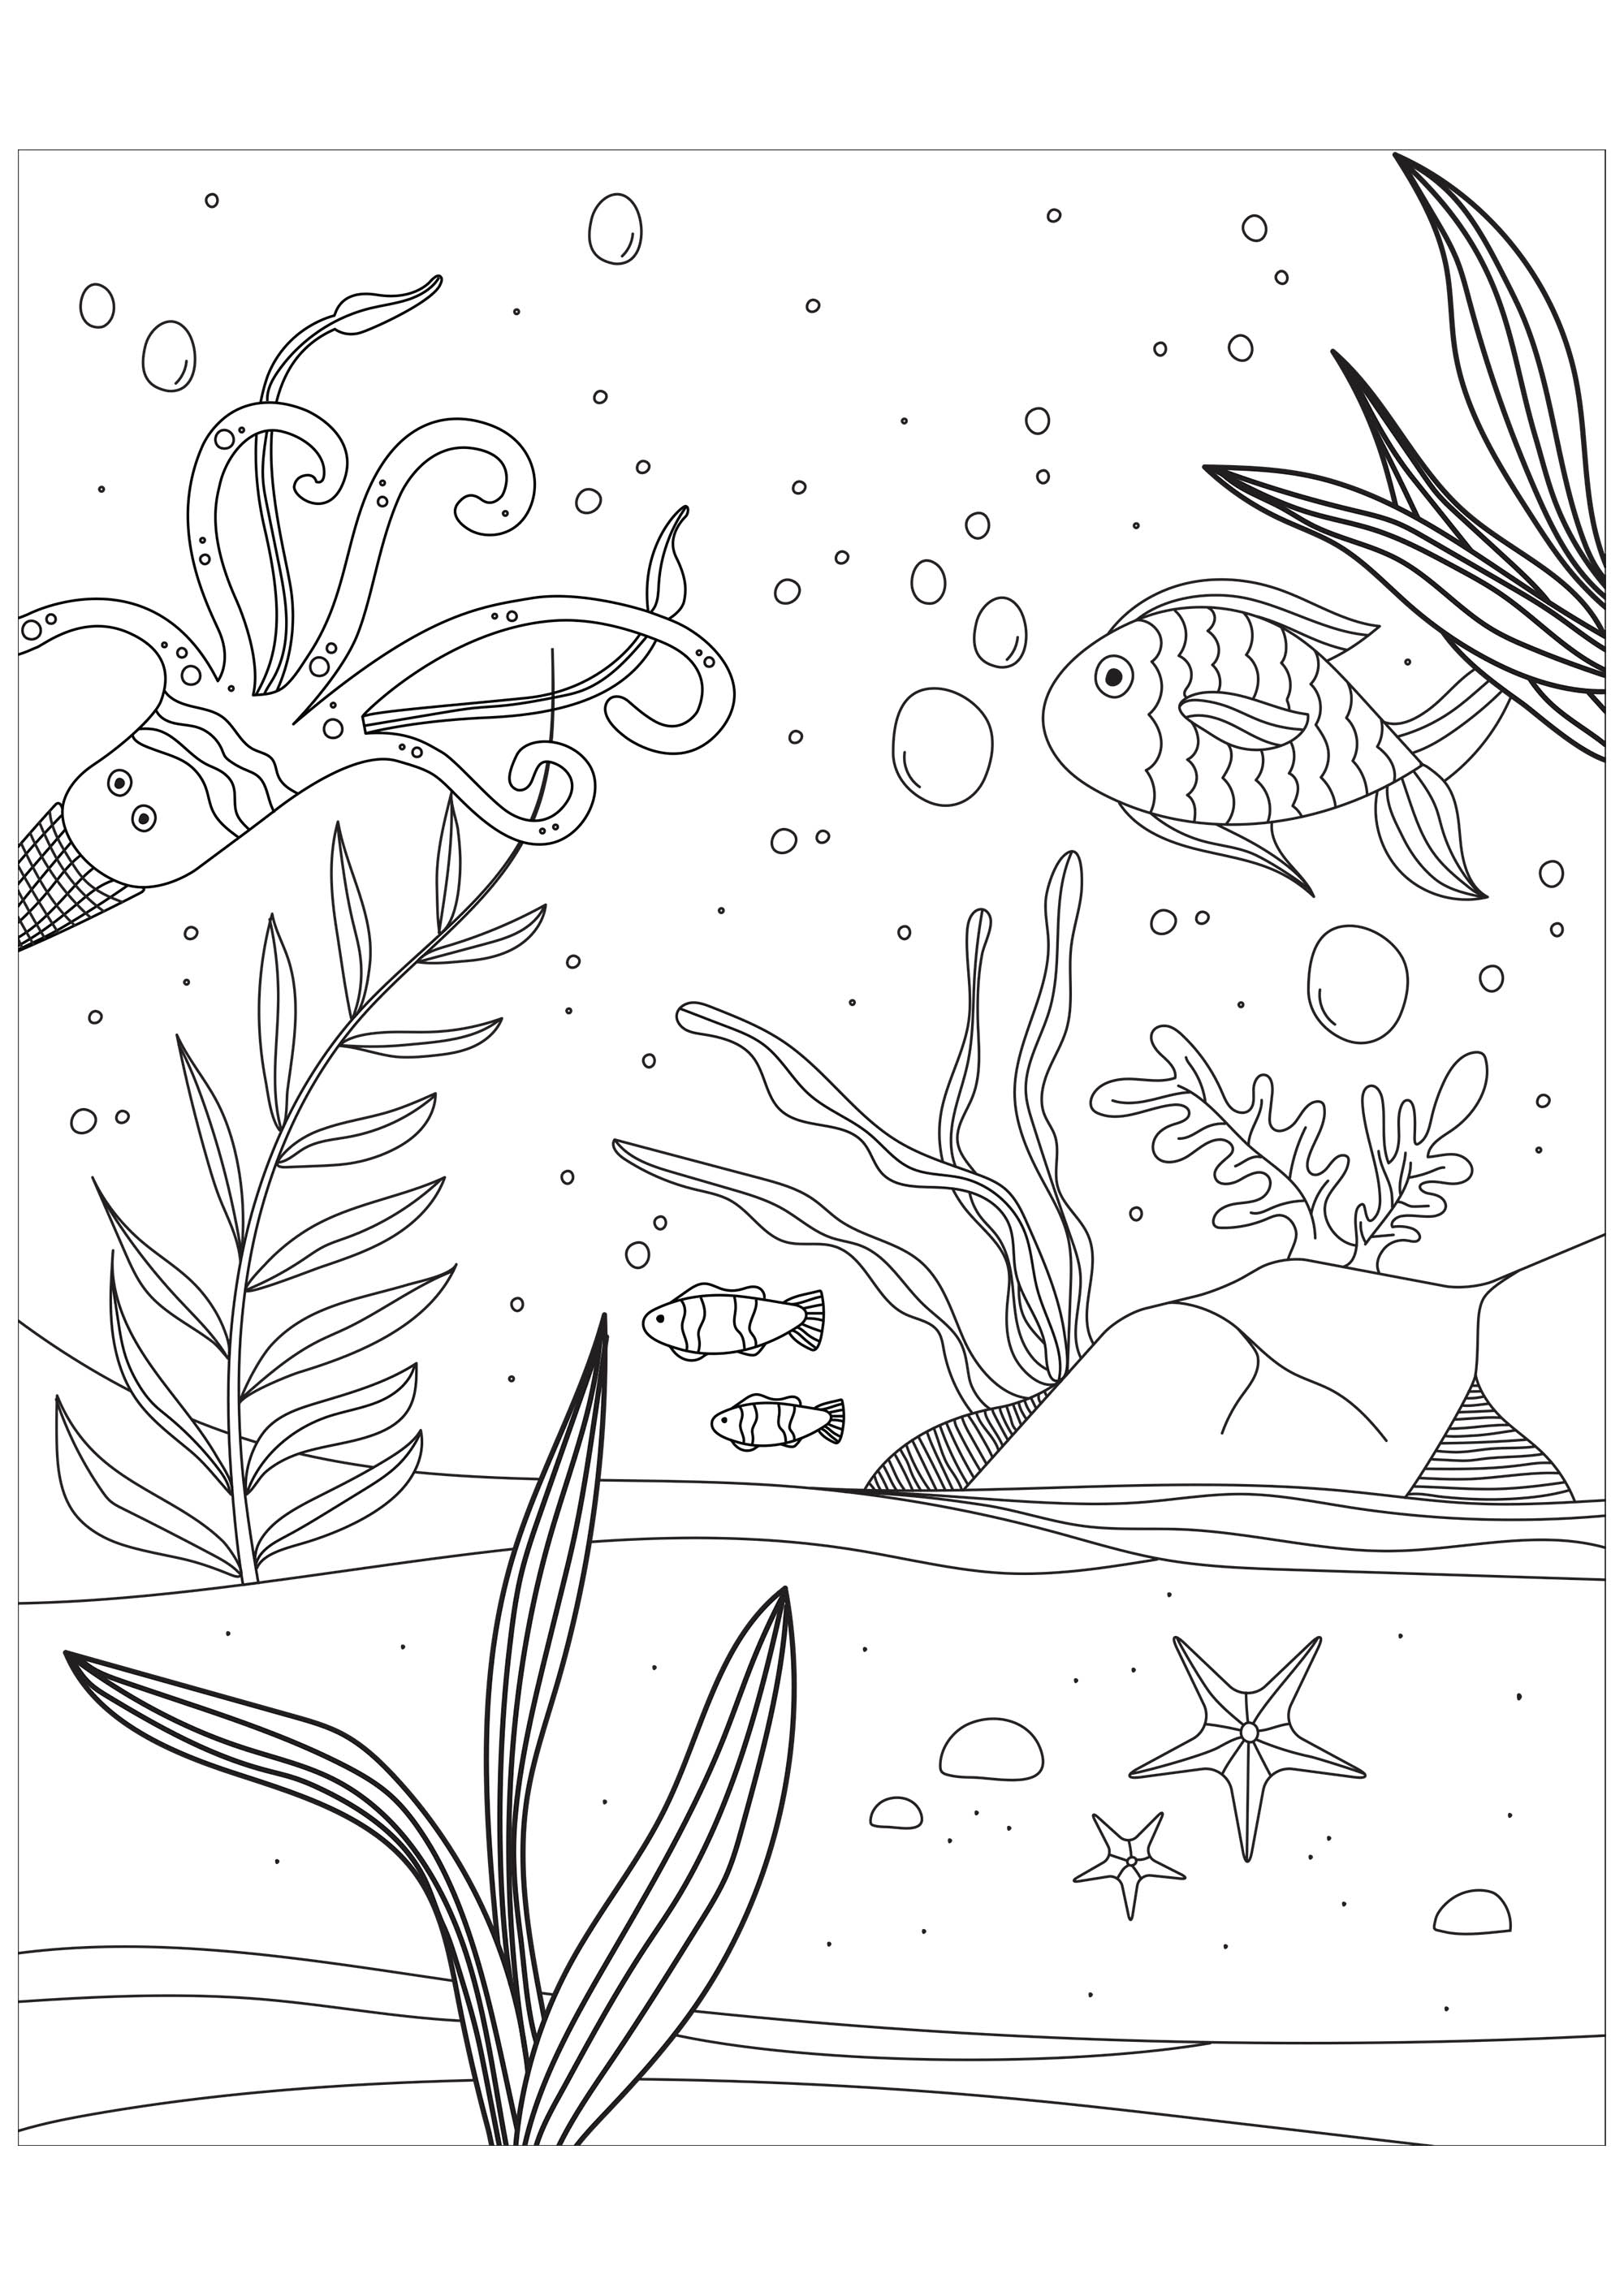 Color these fishes, octopus and starfish, present in these seabed. From the website Gifts.com